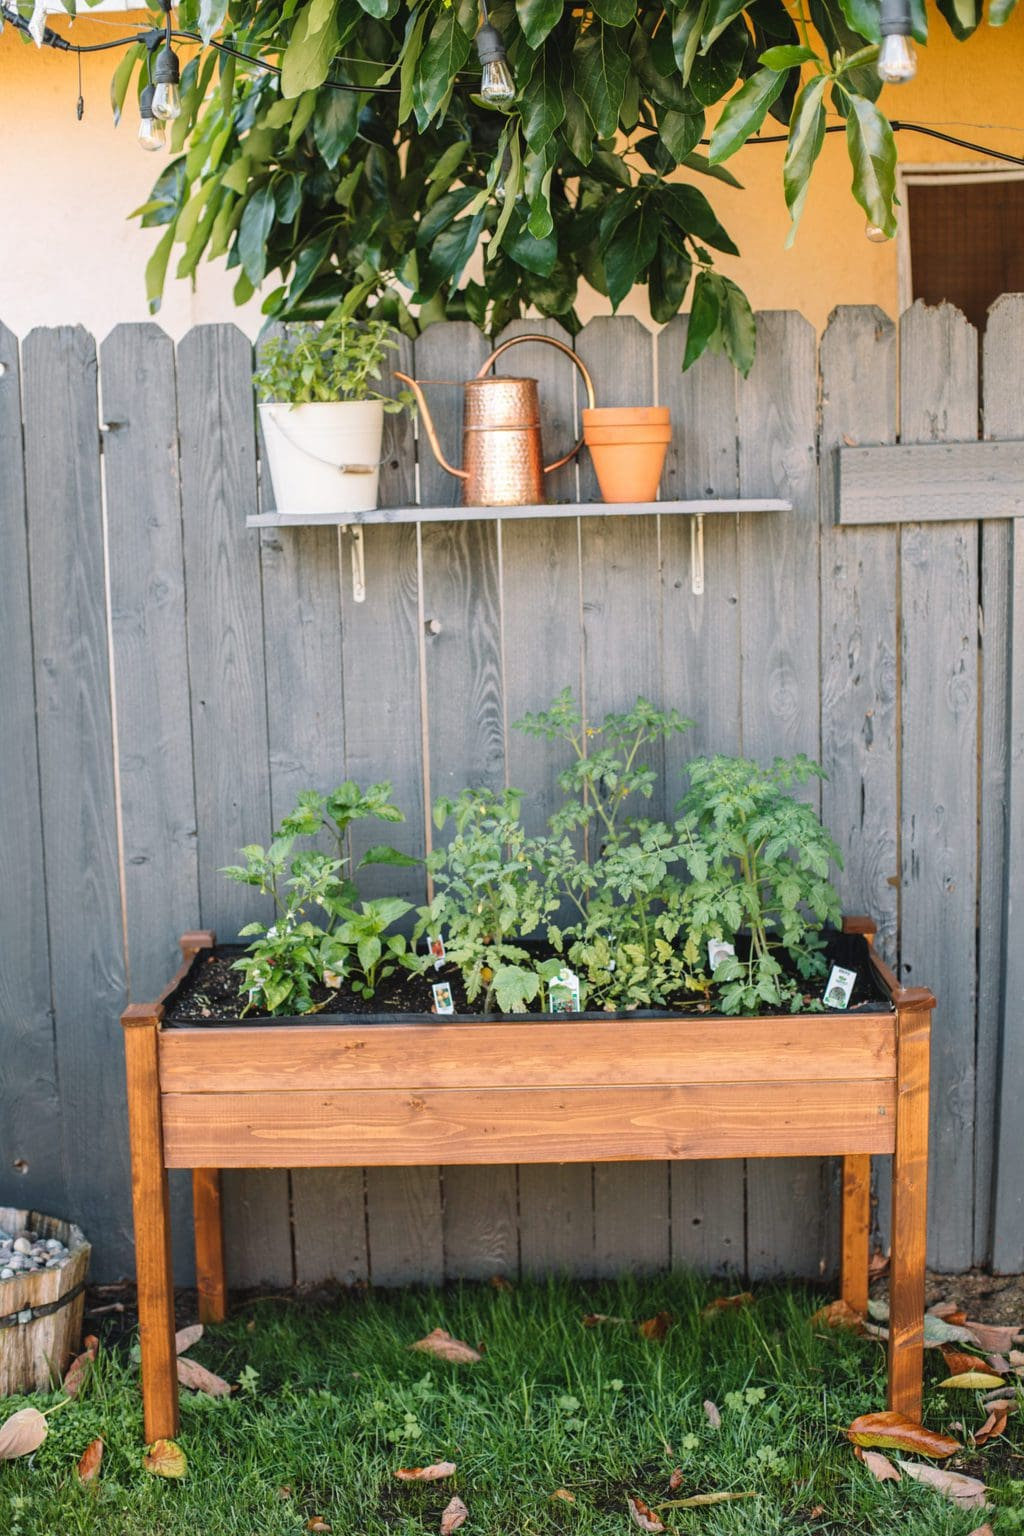 A raised herb garden planter with tomatoes planted inside.